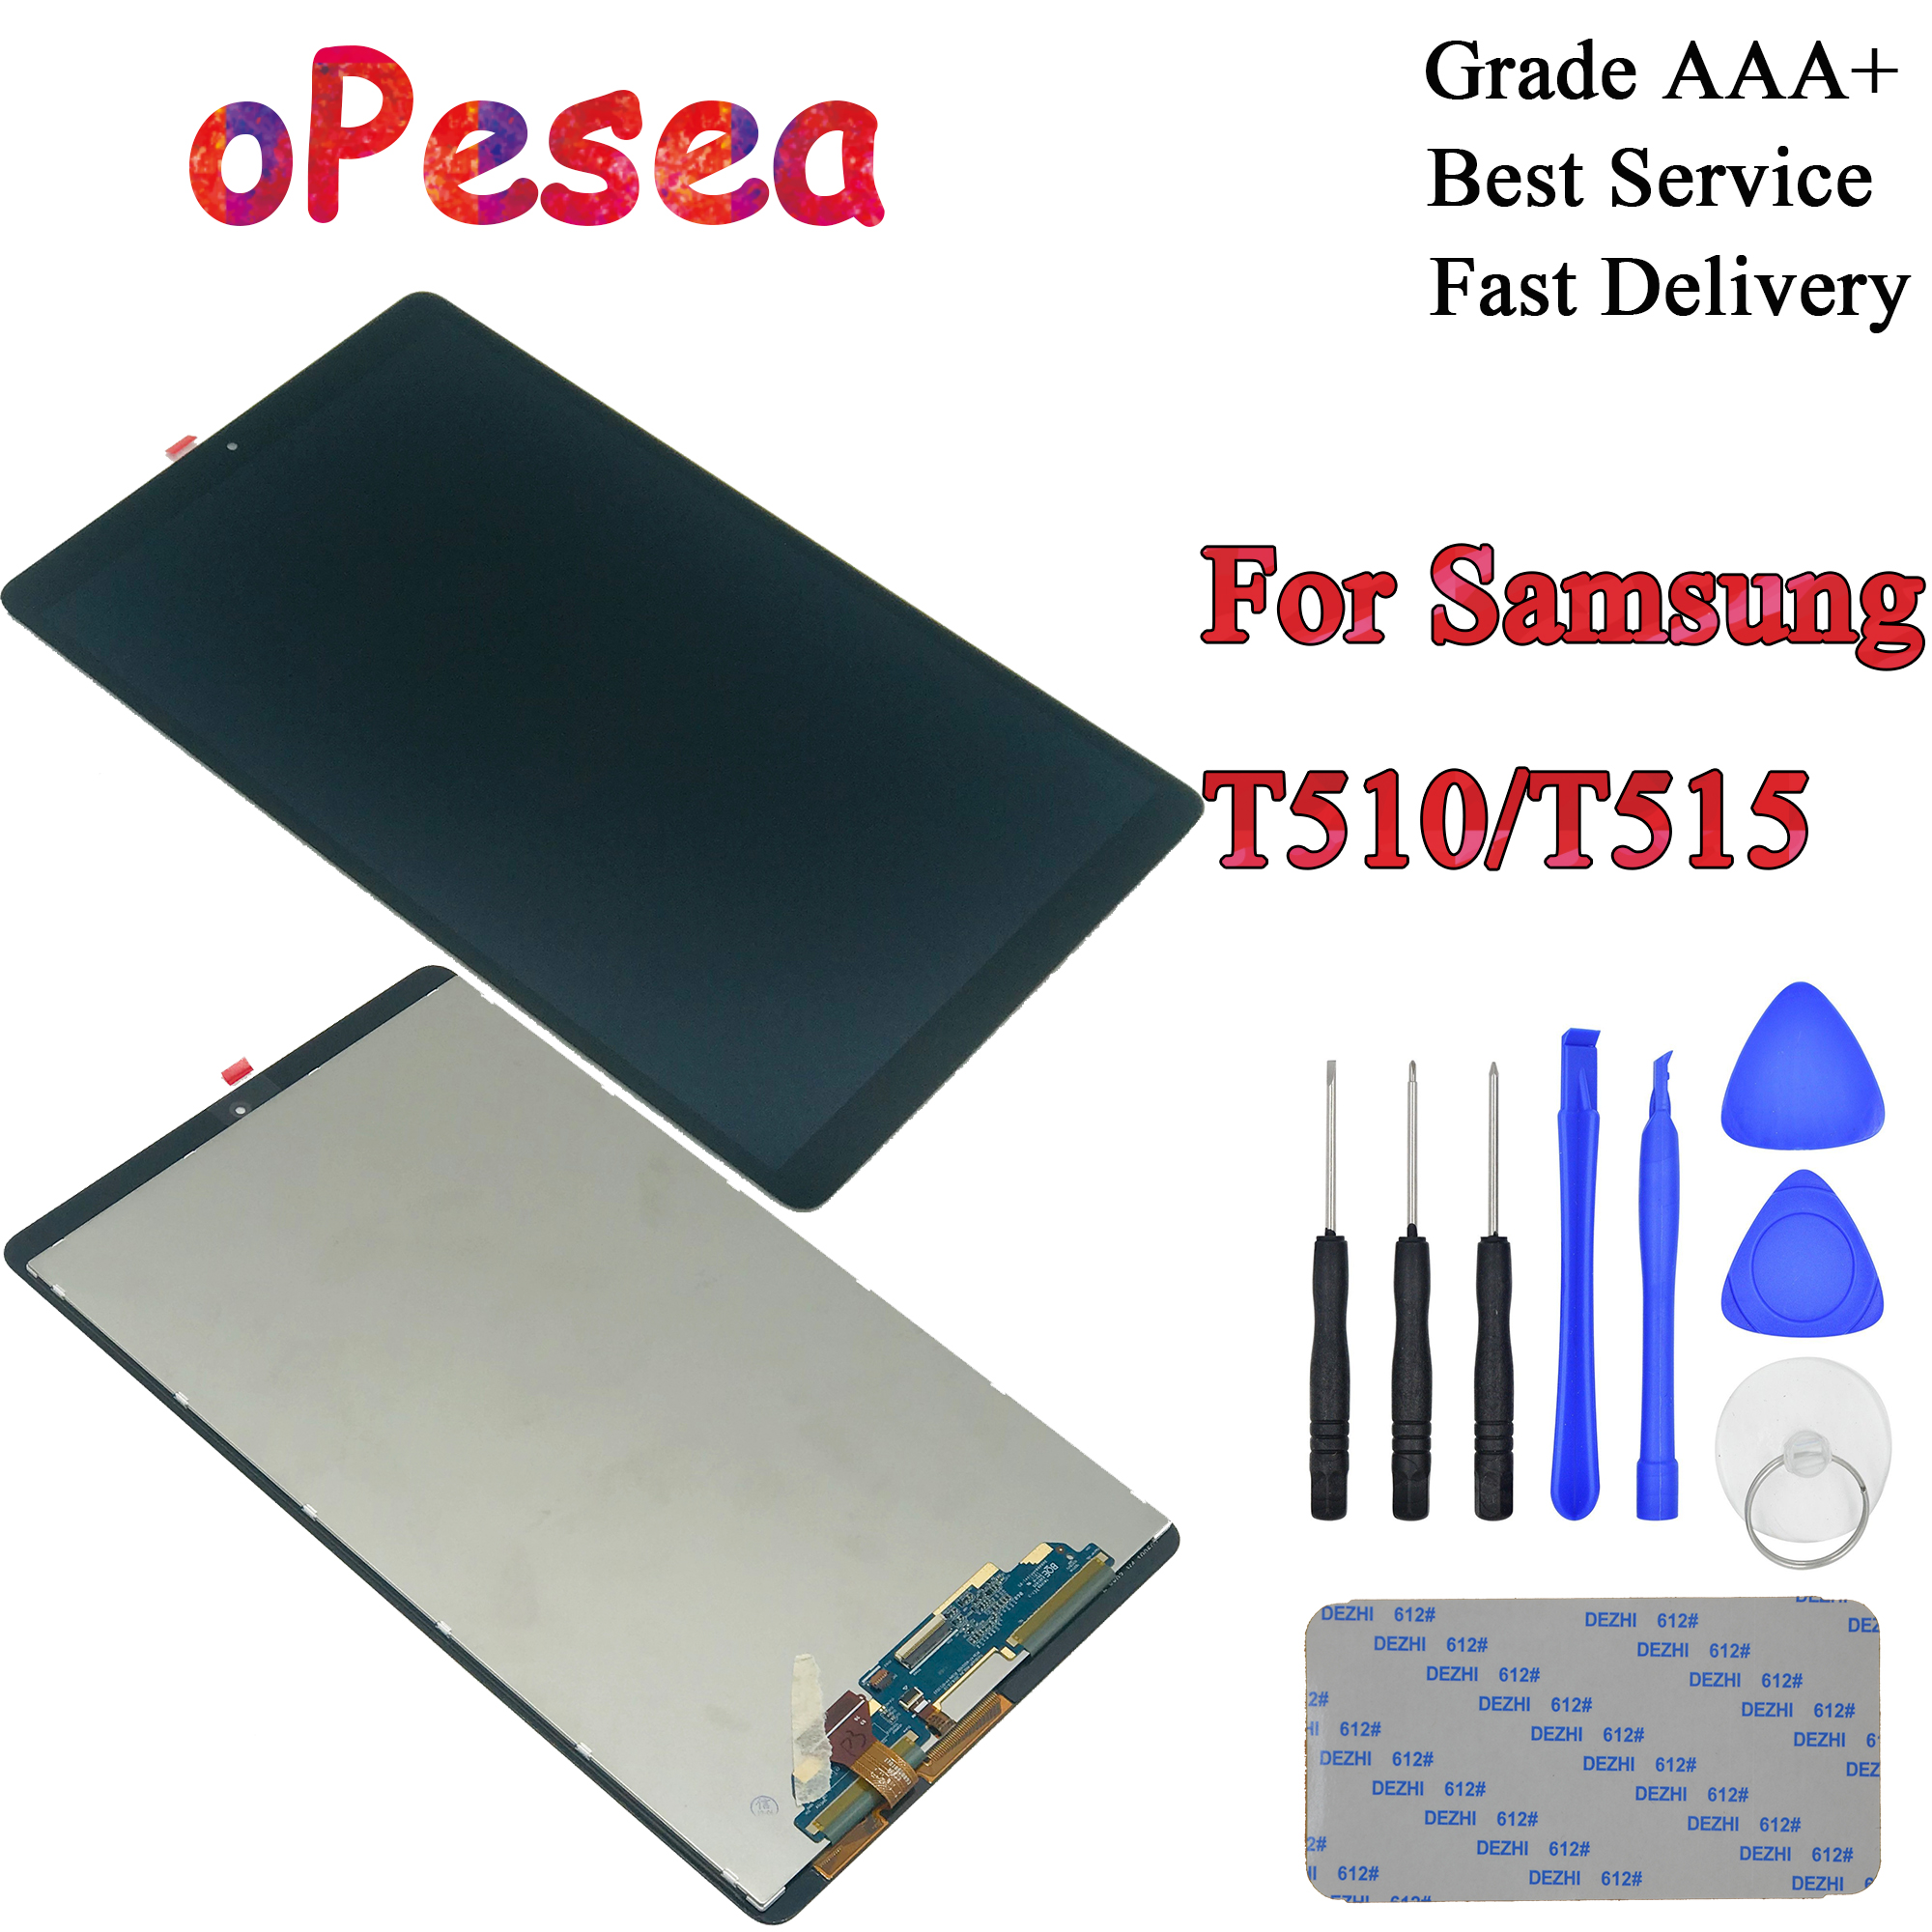 Samsung Galaxy Tab A 10.1 2019 SM-T515 T510 LCD Digitizer Touch Screen Assembly